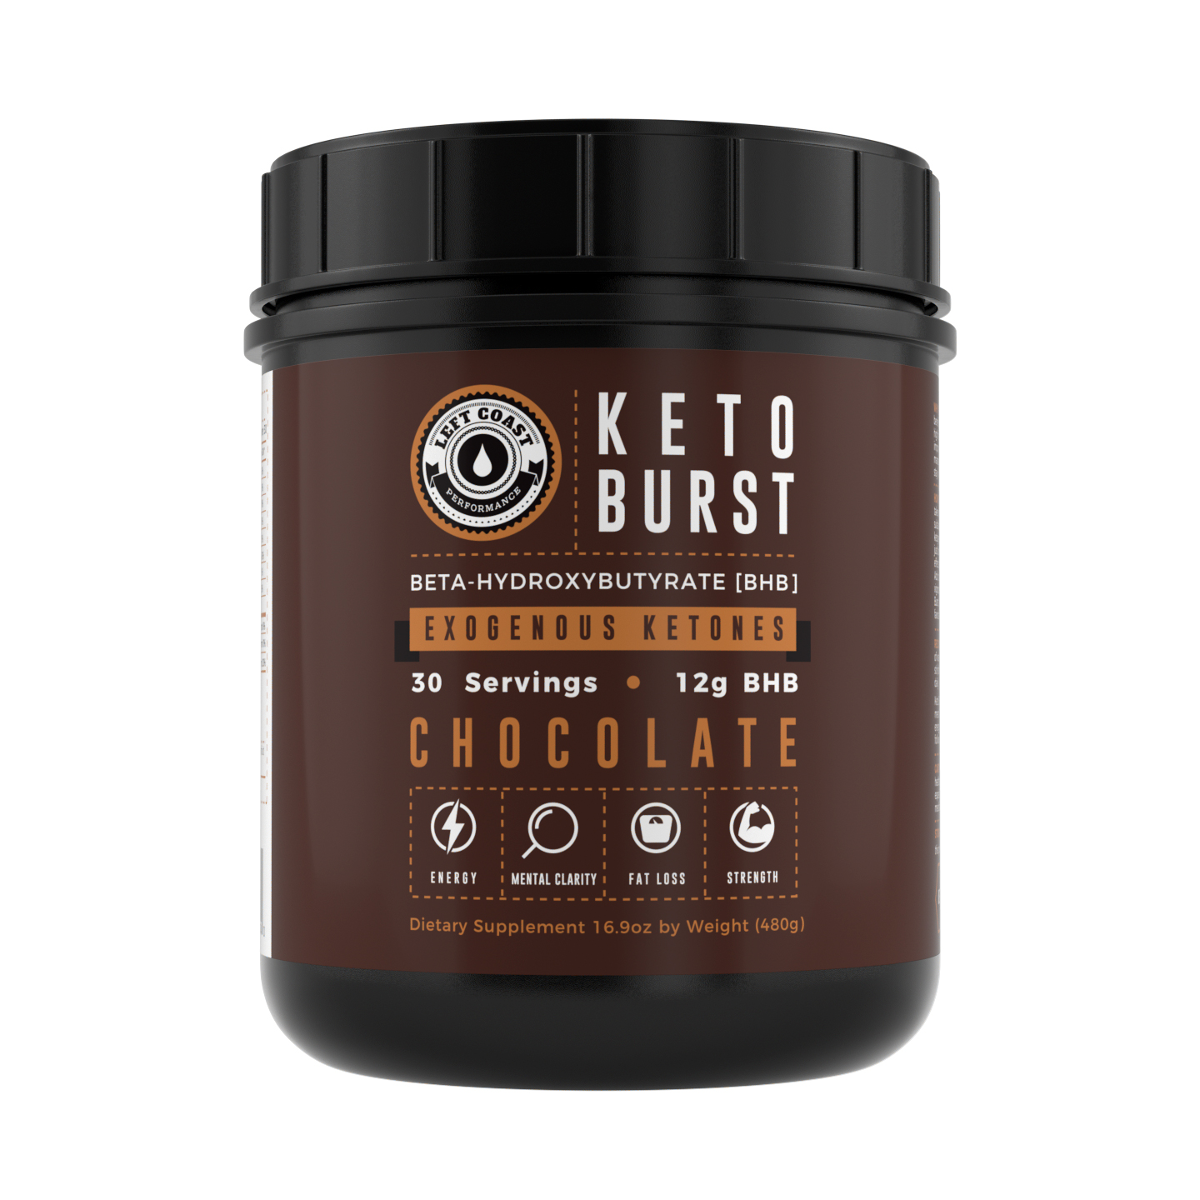 Keto Burst BHB Keto Supplement